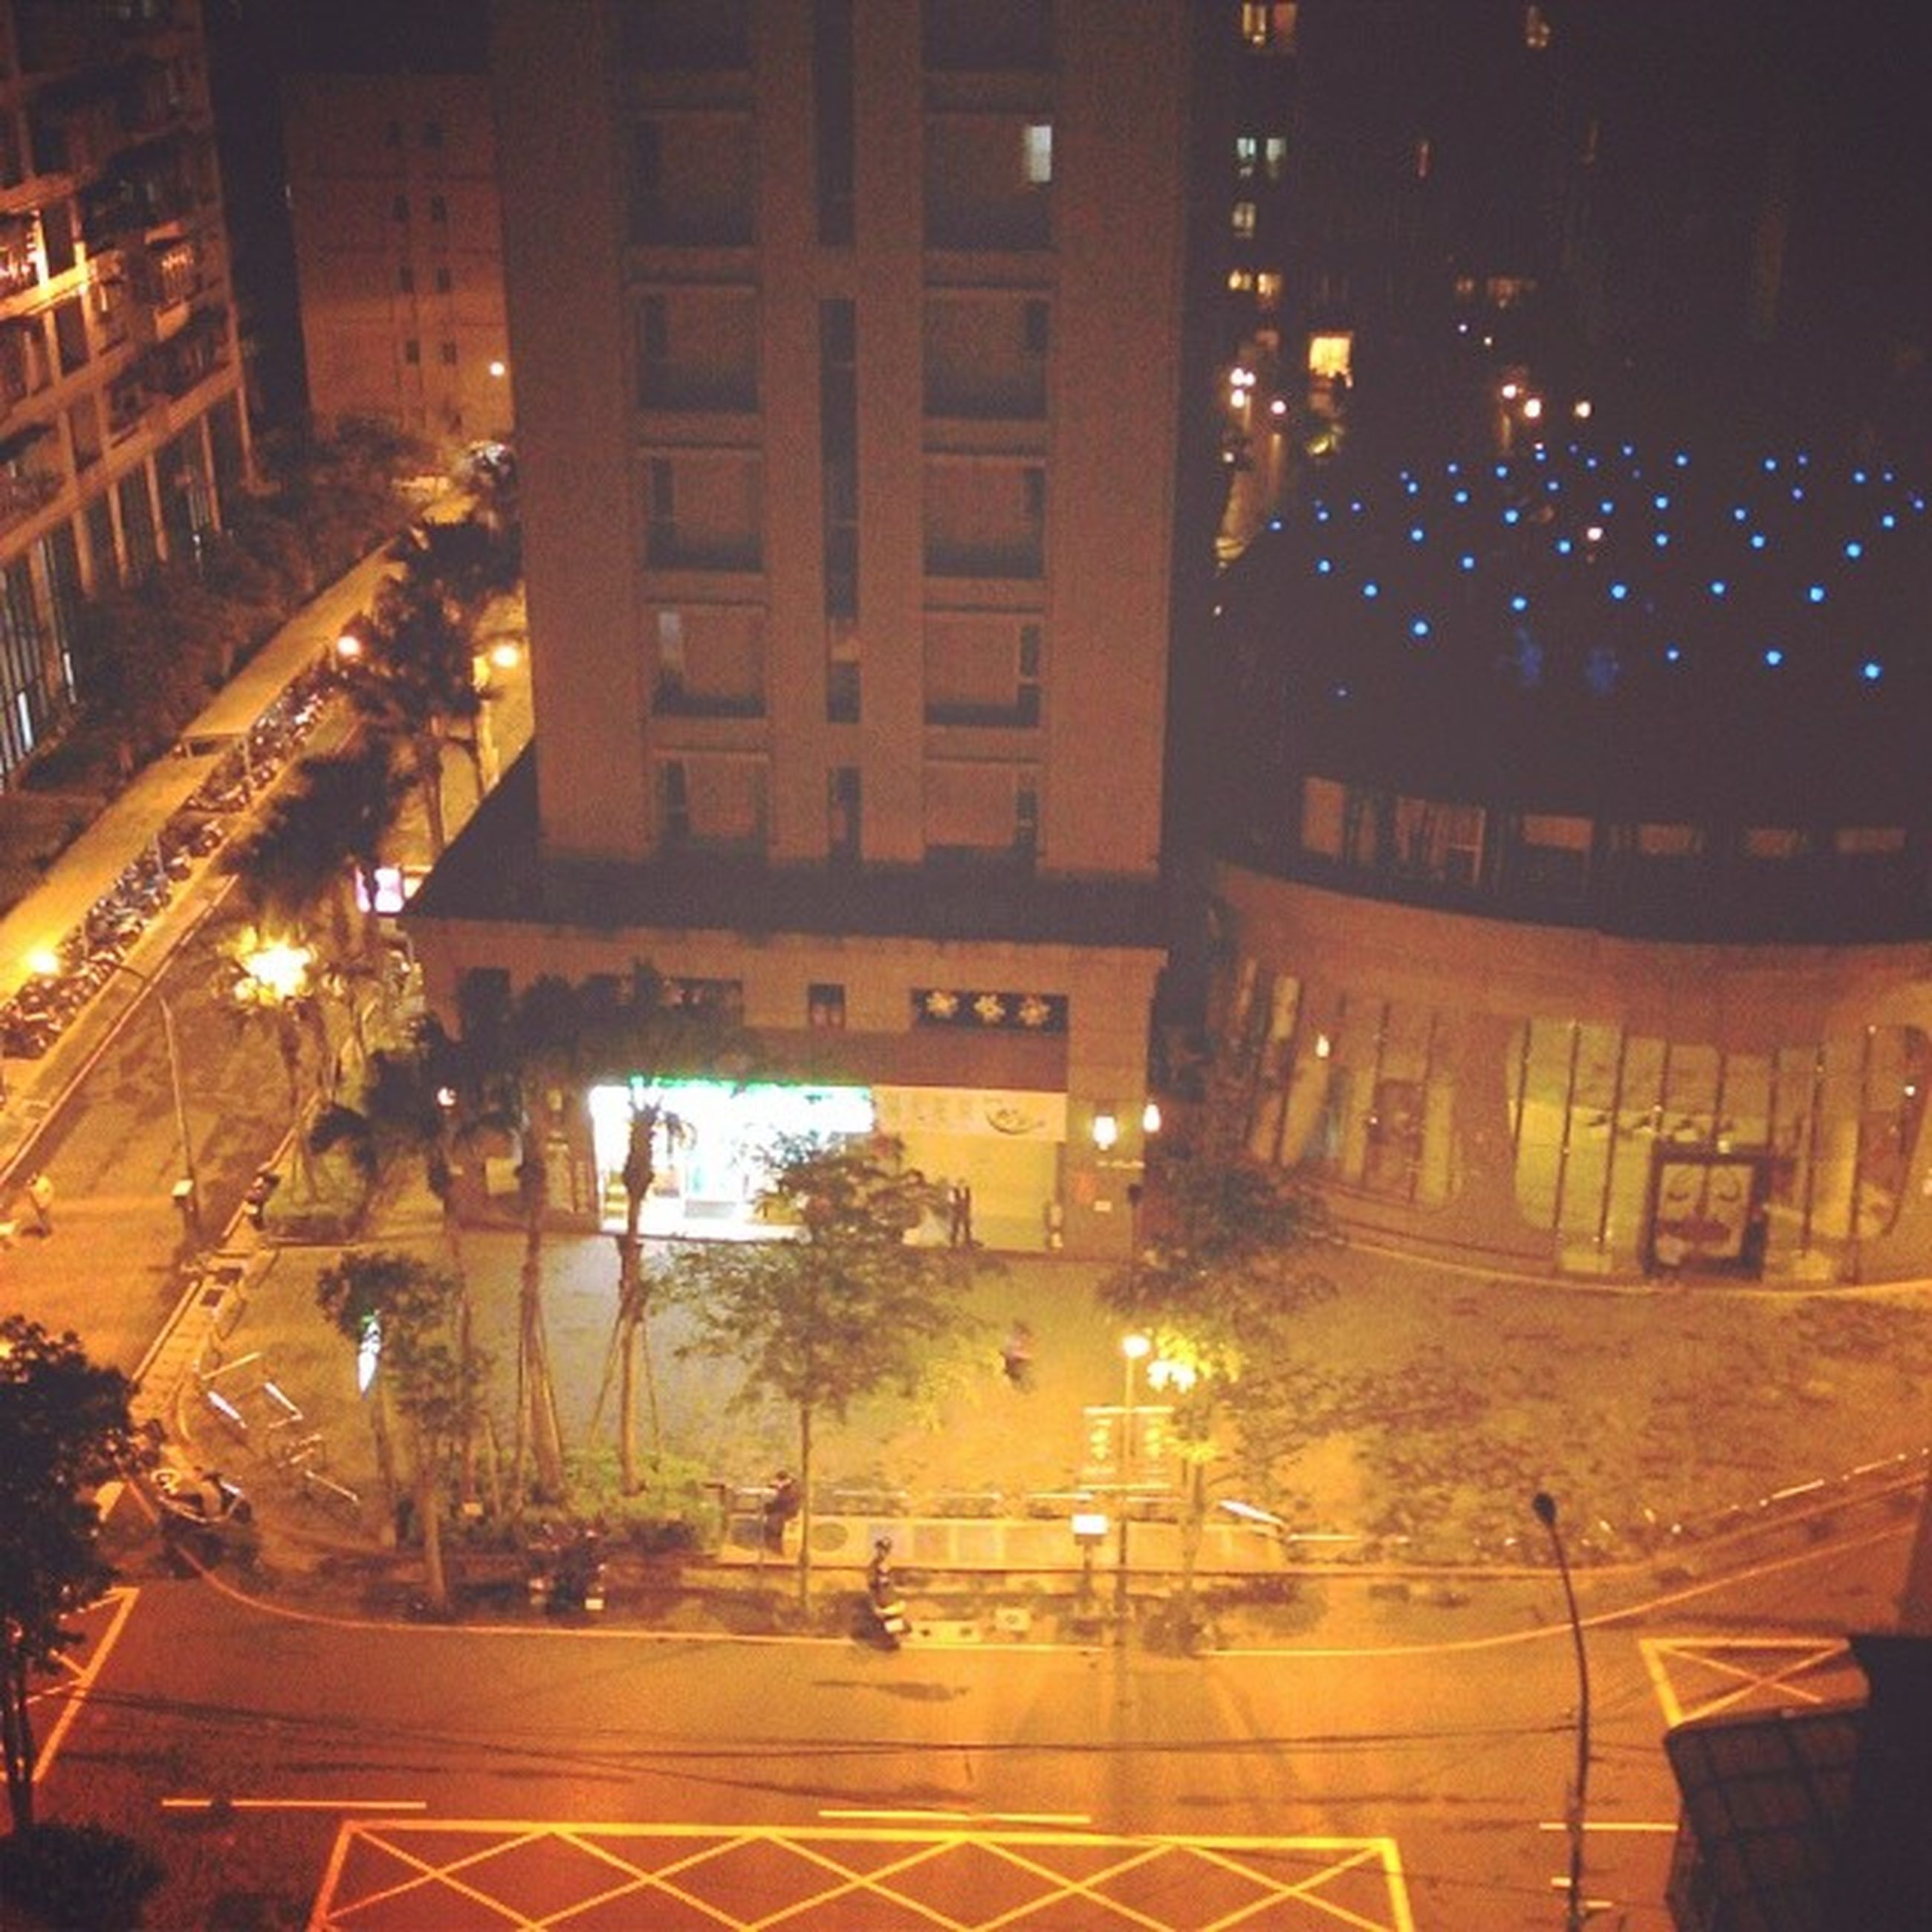 illuminated, night, building exterior, architecture, built structure, city, street, street light, high angle view, lighting equipment, sidewalk, outdoors, residential building, building, city life, reflection, tree, no people, road, city street